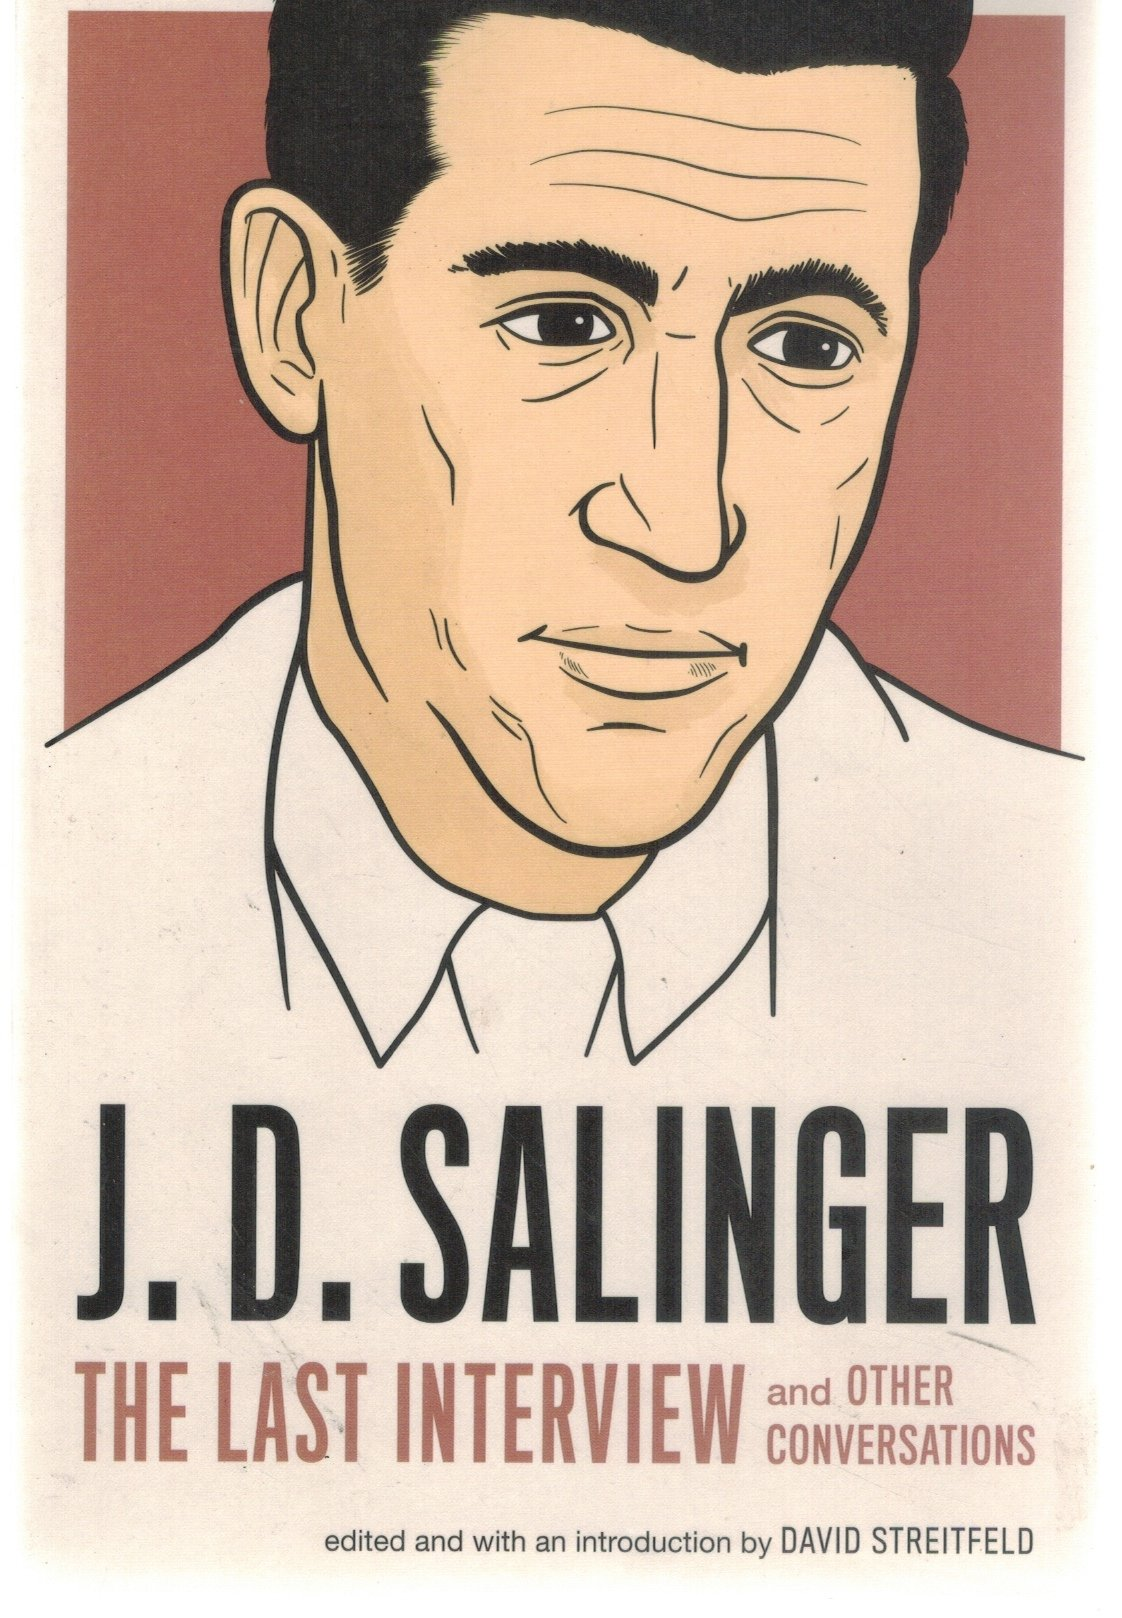 J. D. Salinger  The Last Interview: And Other Conversations  by Salinger, J. D. & David Streitfeld